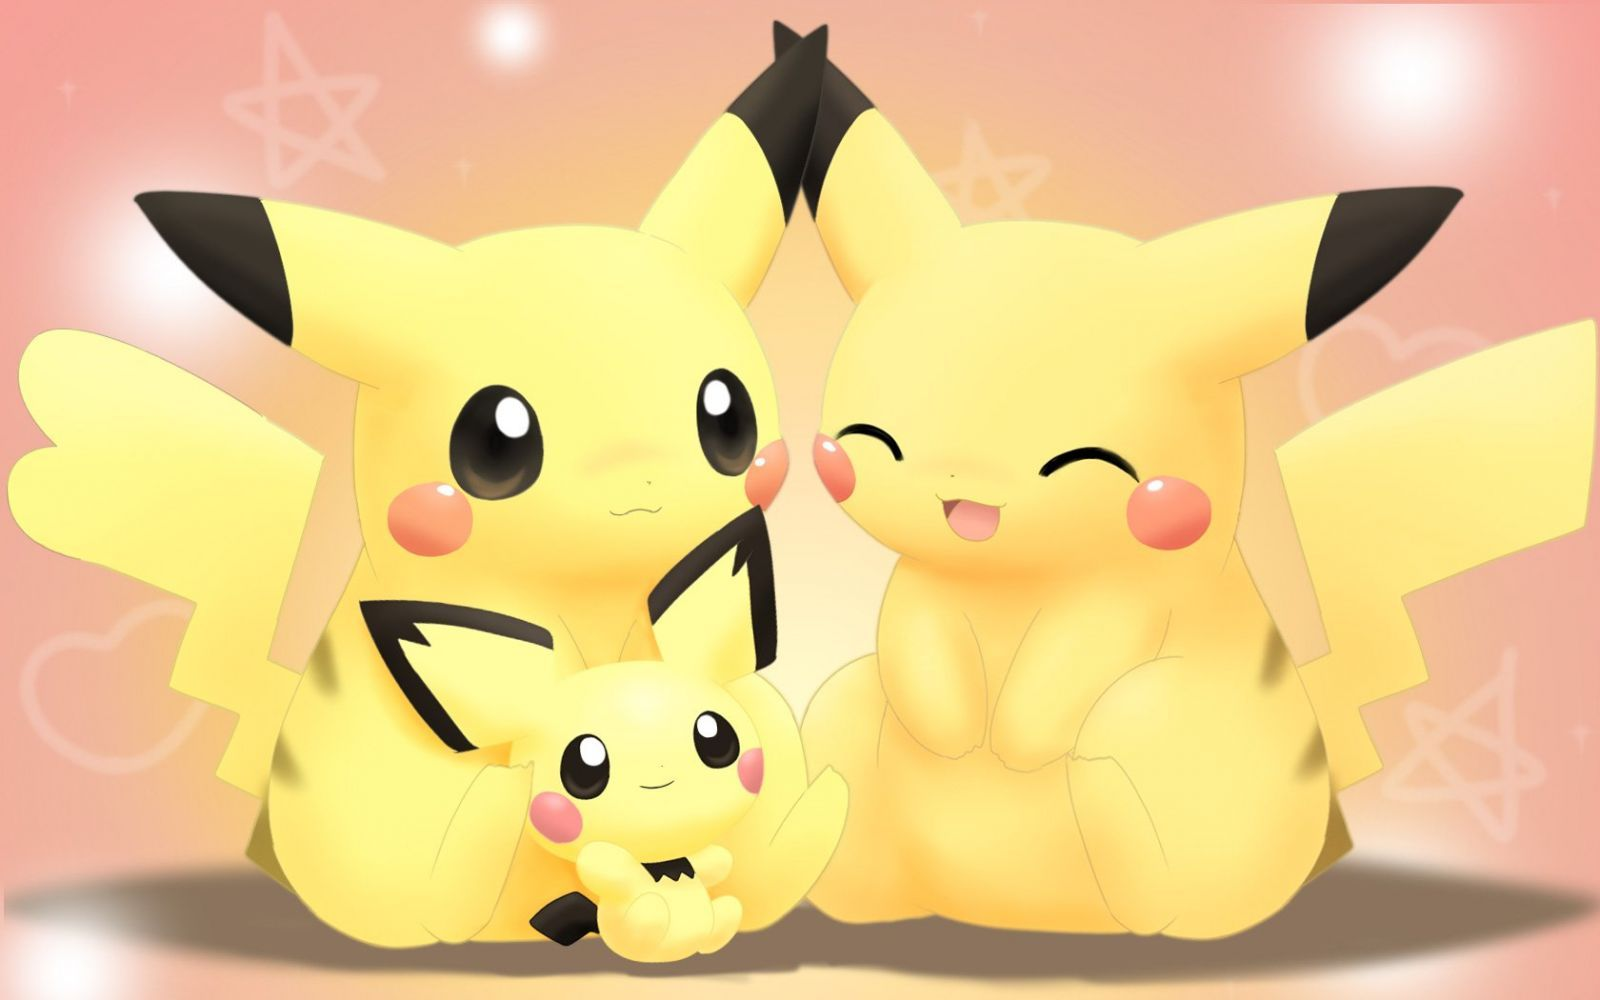 Pokemon Pikachu alternative art Pichu wallpaper | 1680x1050 | 262211 | WallpaperUP #fondecranhiver